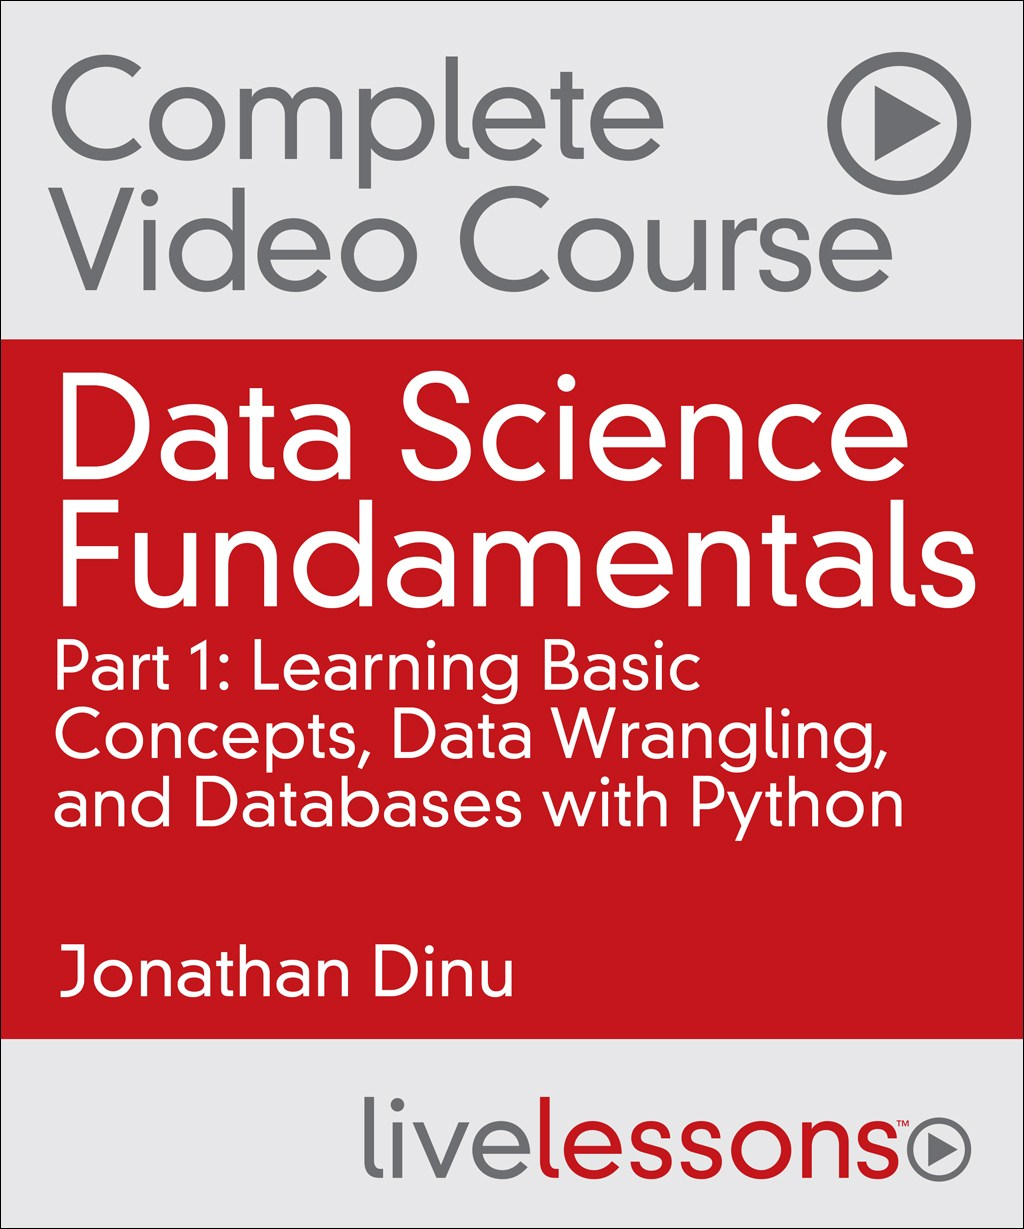 Data Science Fundamentals Part 1, Complete Video Course